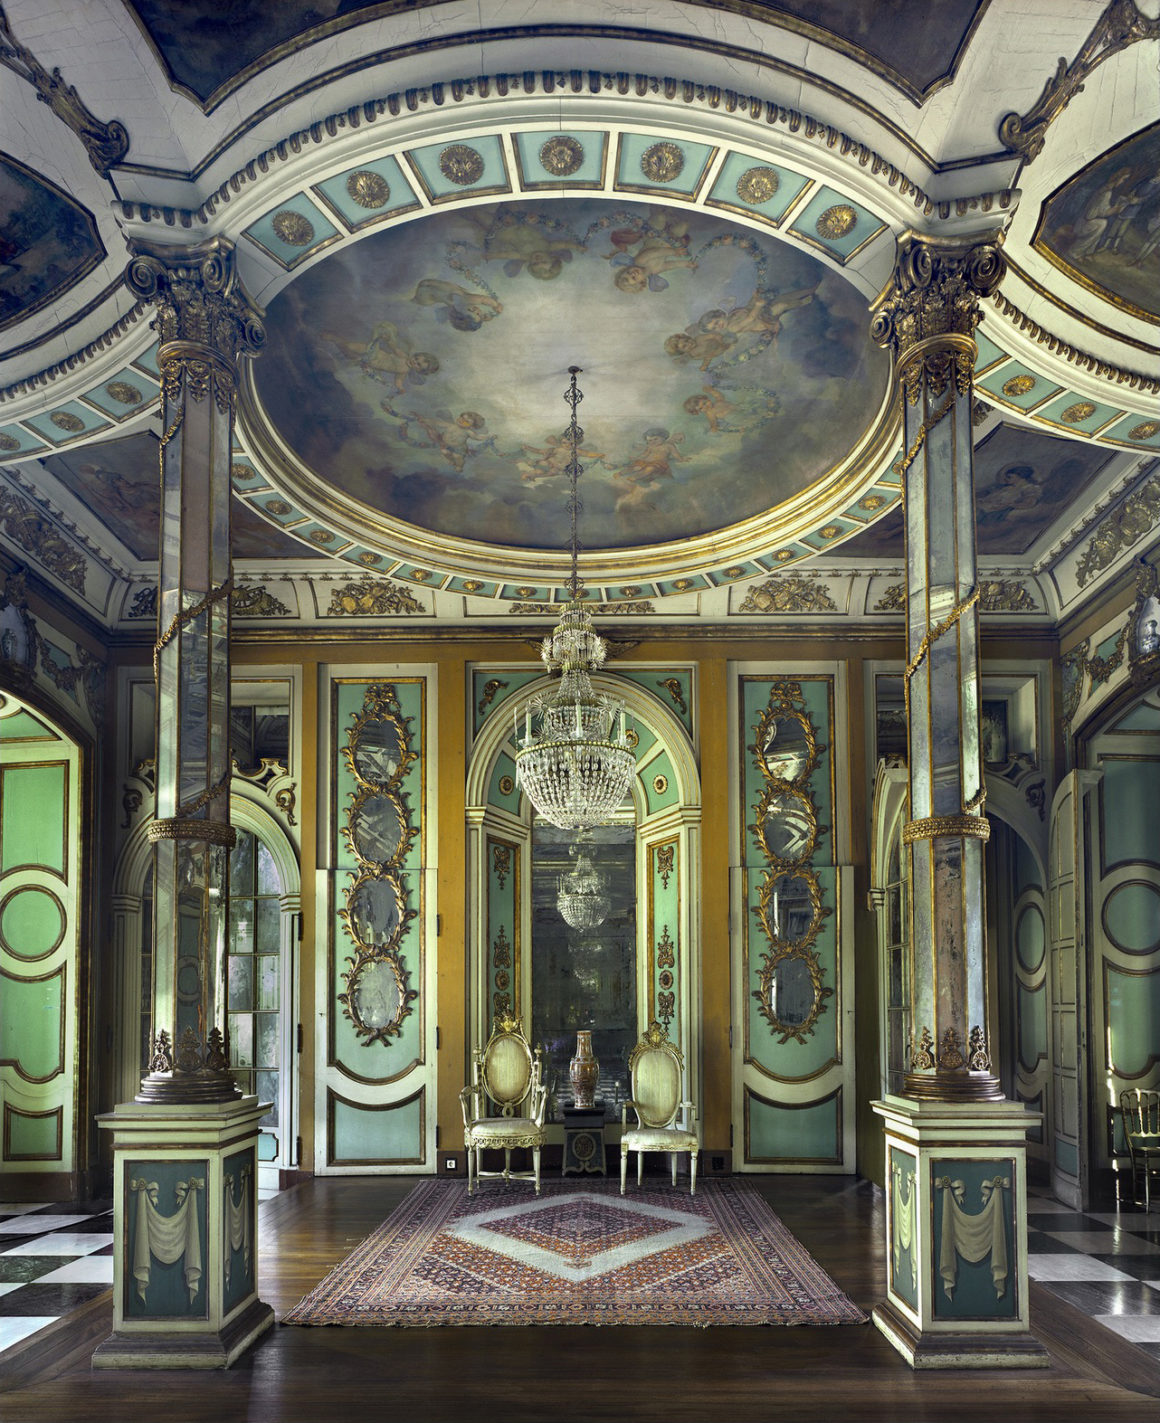 Throne Room, Lisbon 2011 by Michael Eastman